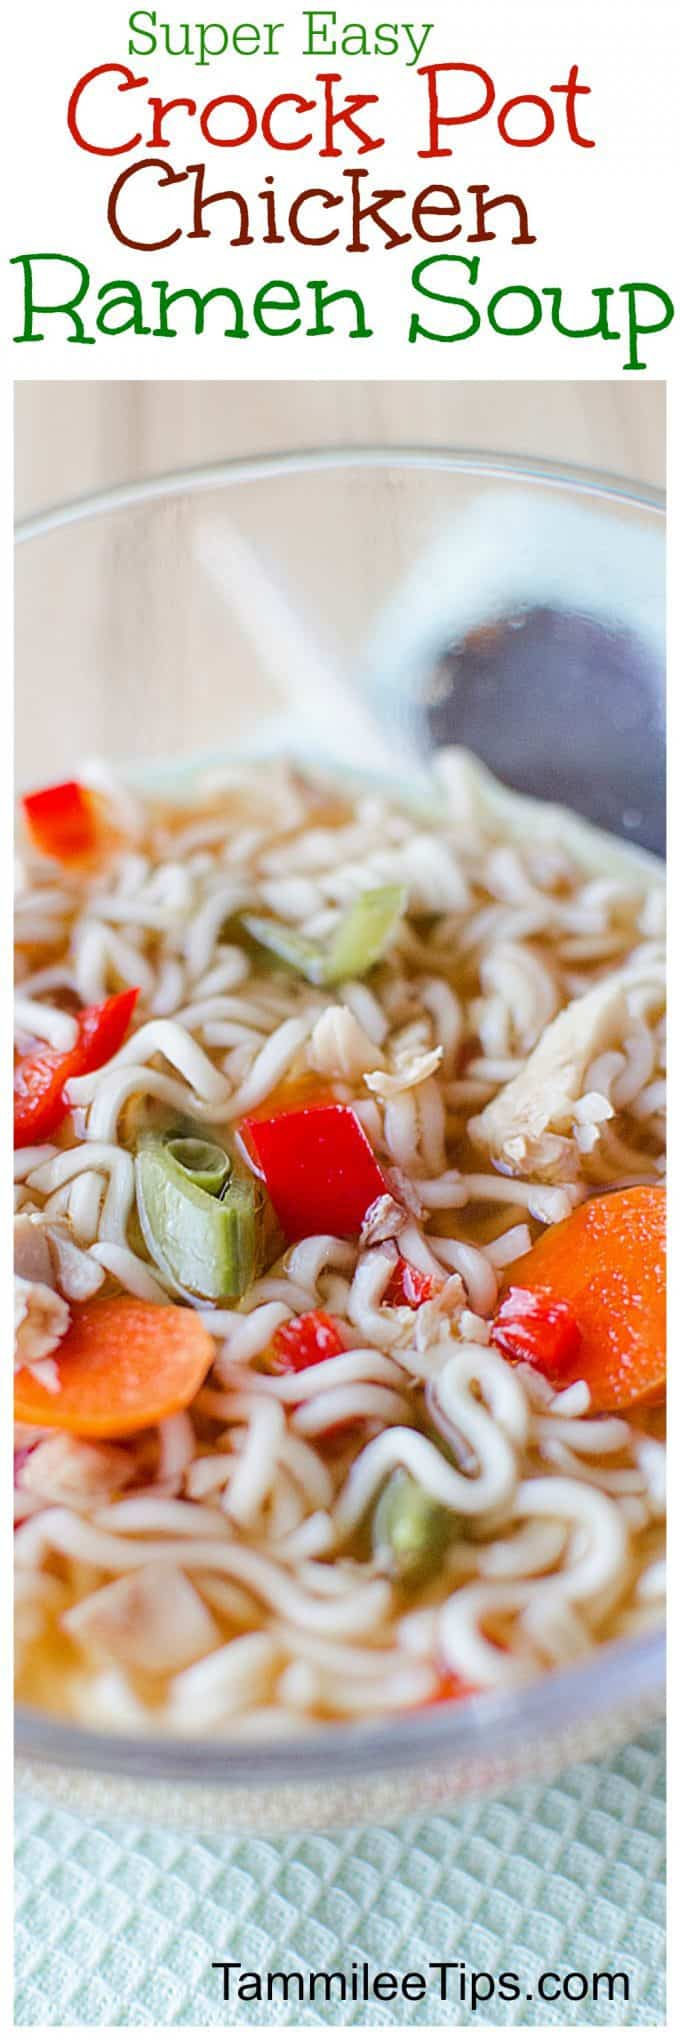 Easy Crock Pot Chicken Ramen Soup Recipe is the perfect comfort food! The slow cooker does all the work!